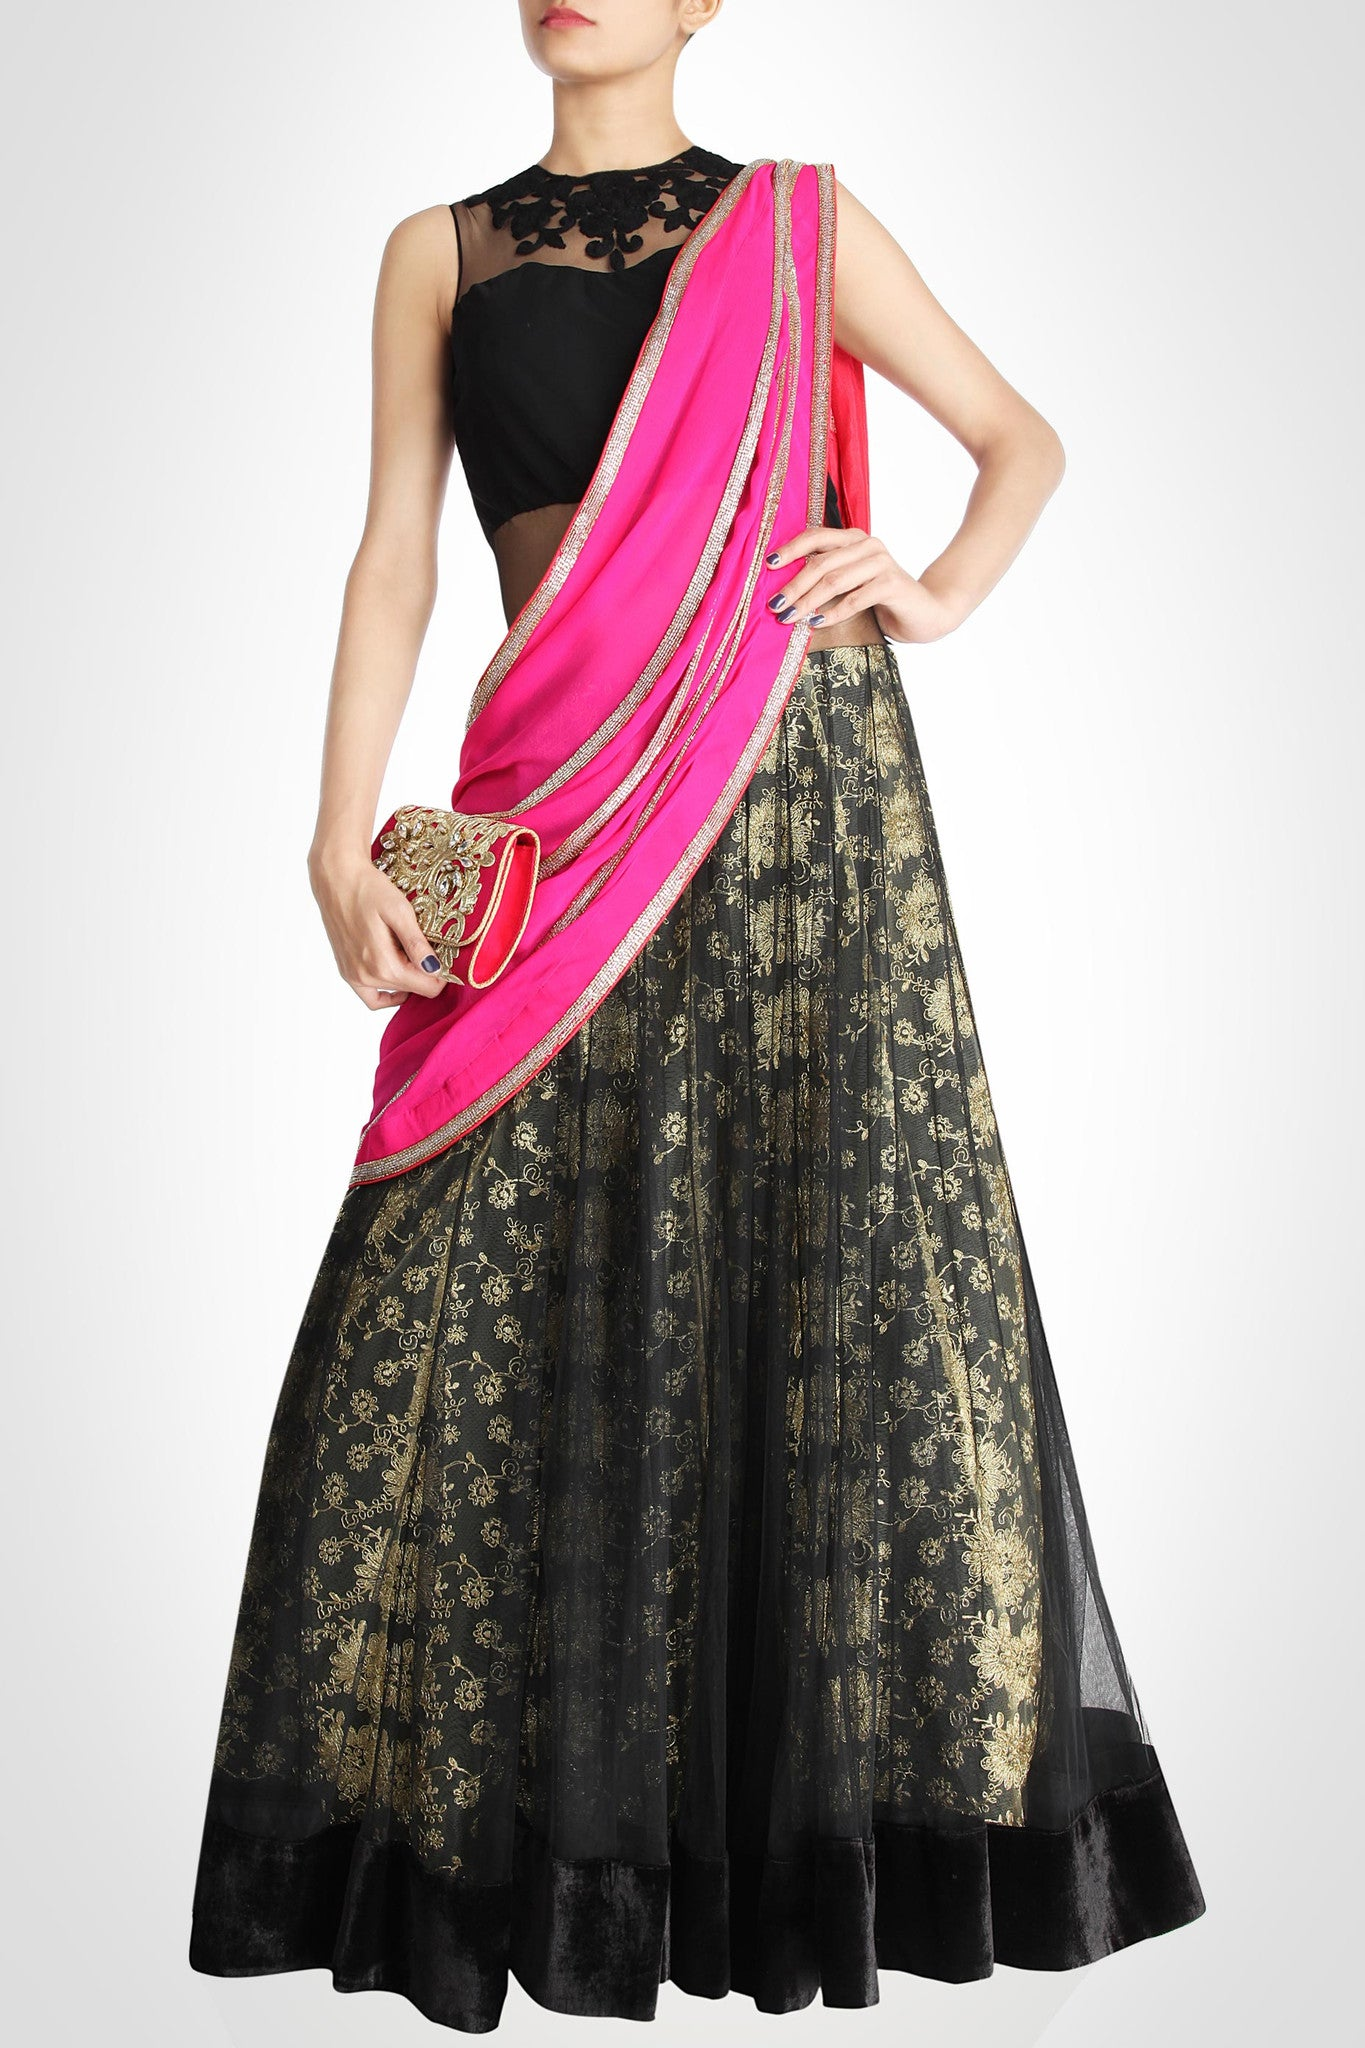 Black Lehenga with Red & Pink Dupatta